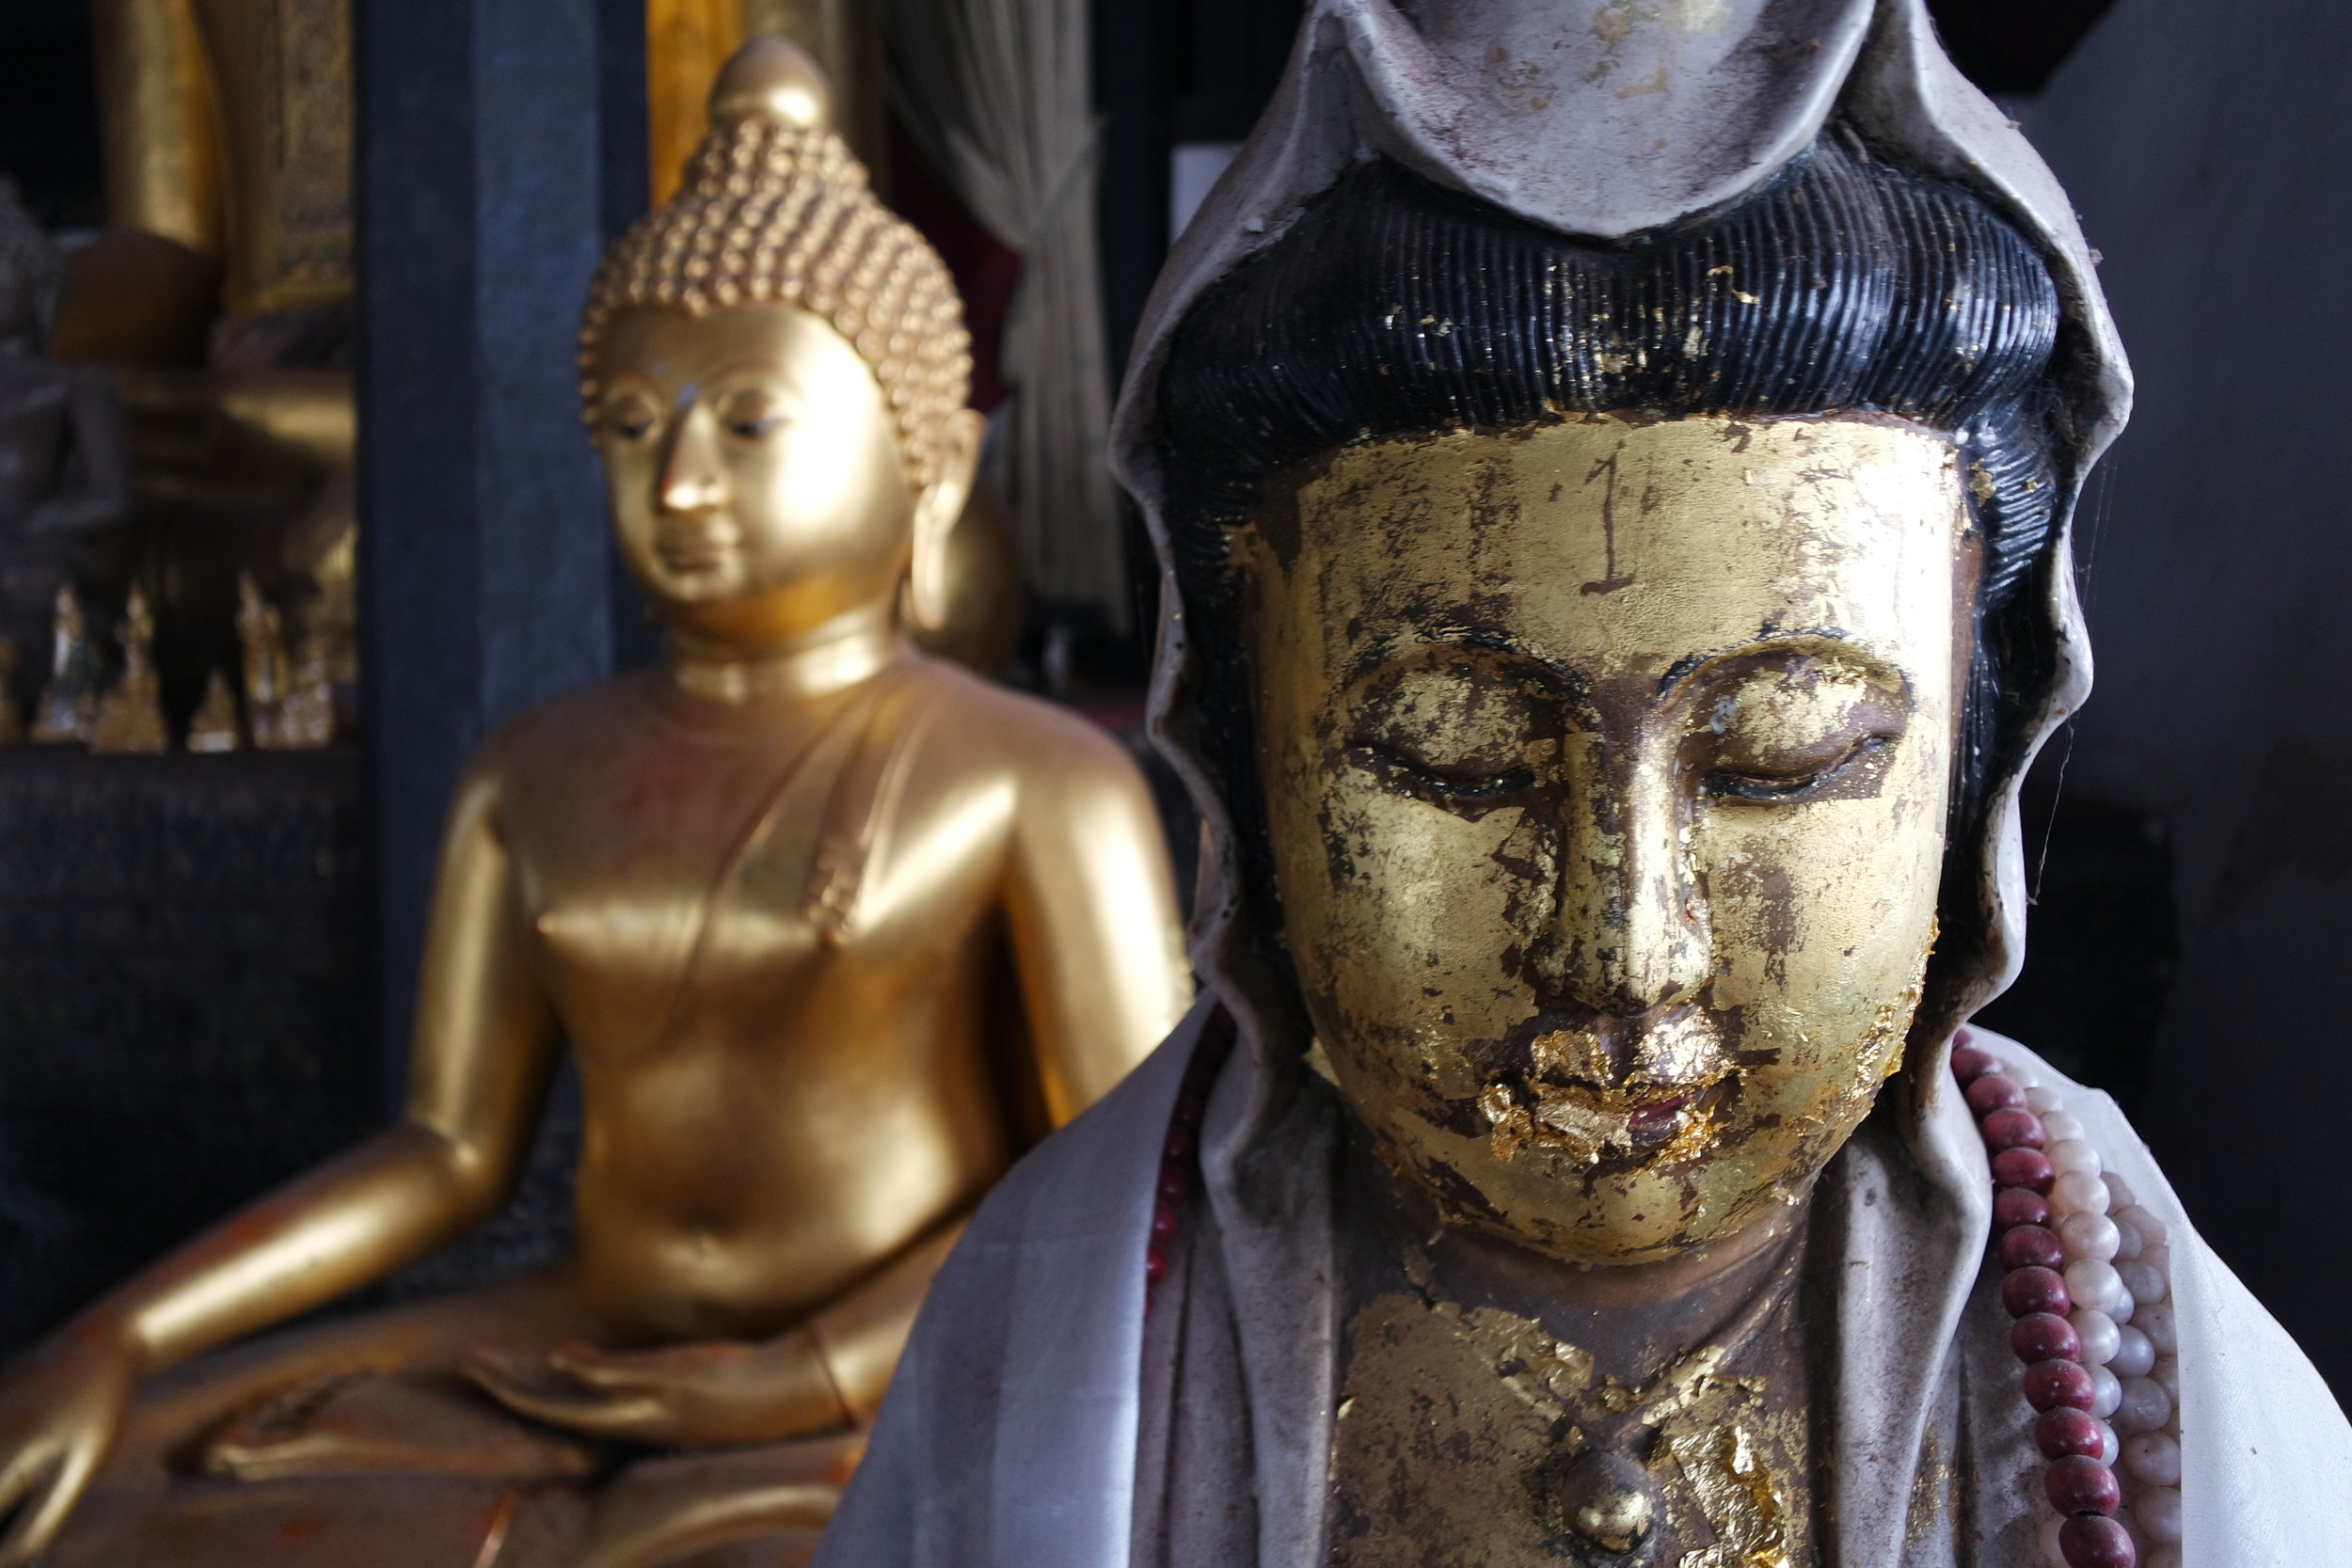 Buddhist temples are filled with various statues in all sorts of mismatched styles